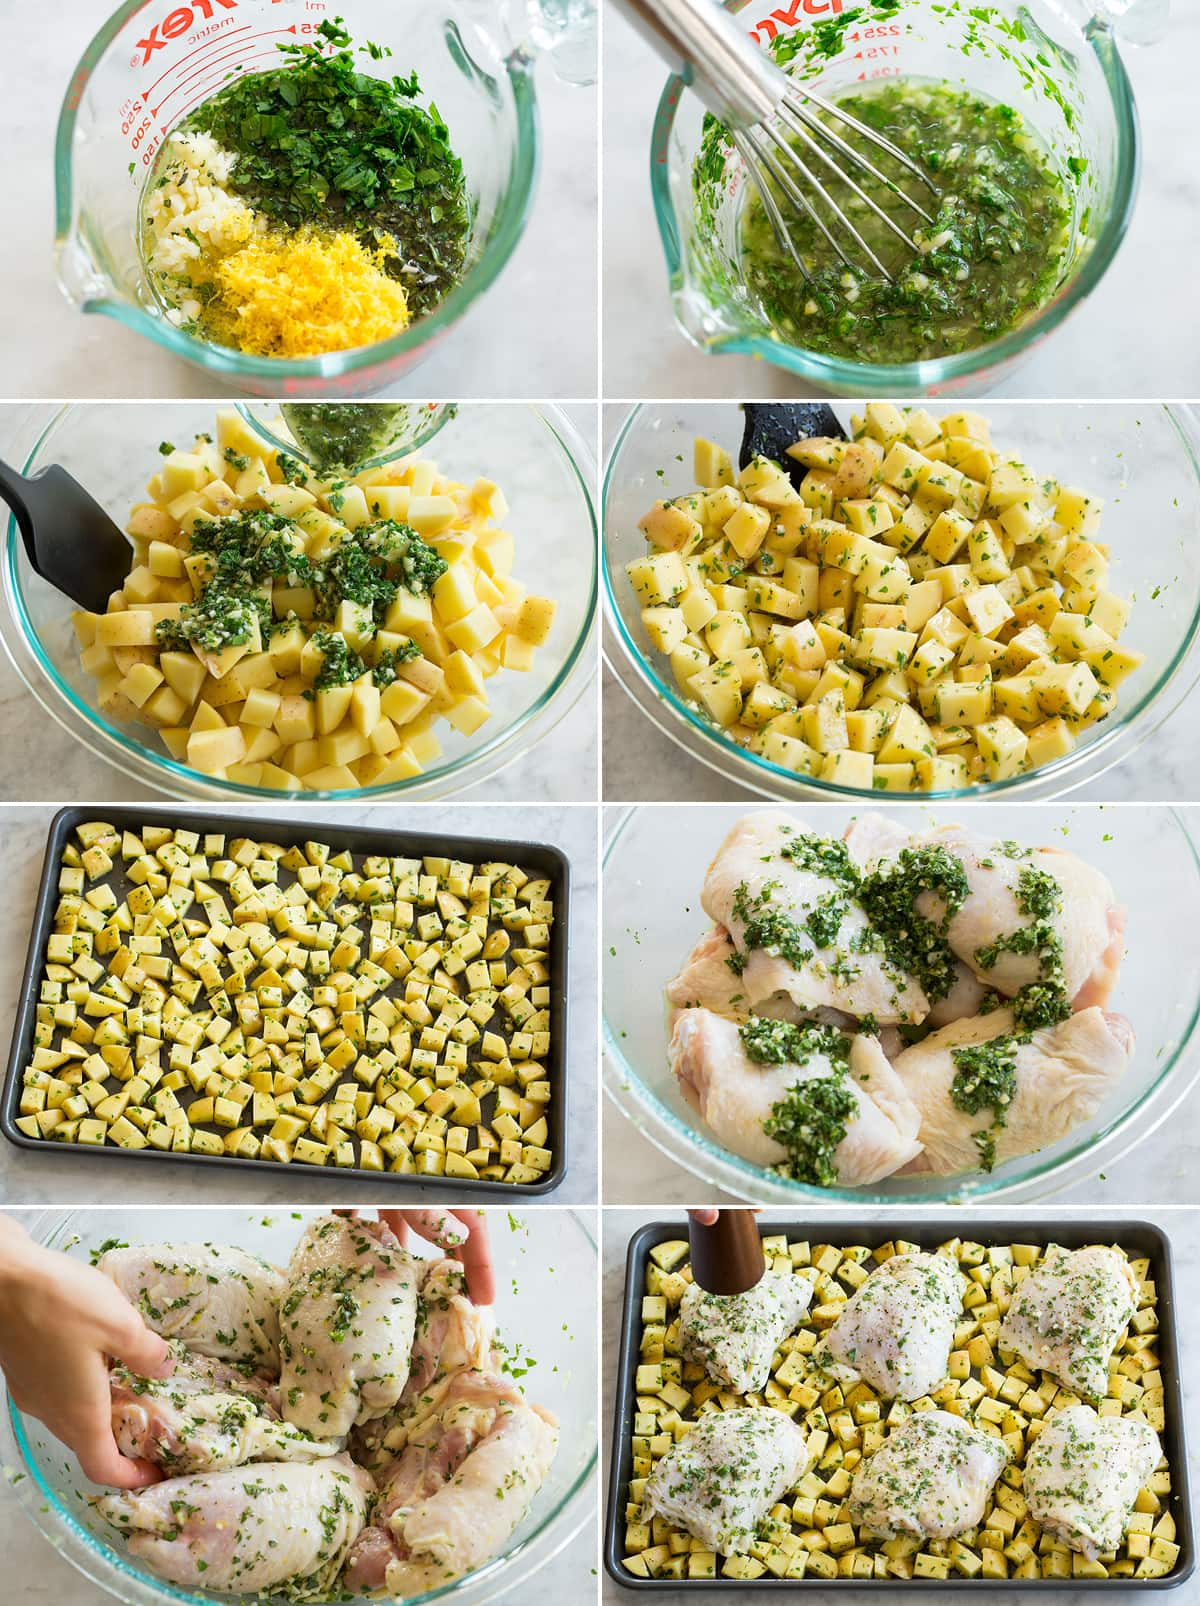 Collage of eight photos showing how to make one pan chicken and potatoes. Includes making herb seasoning, tossing with potatoes, spreading on pan. Then tossing chicken with herb mixture and spreading over potatoes on pan.